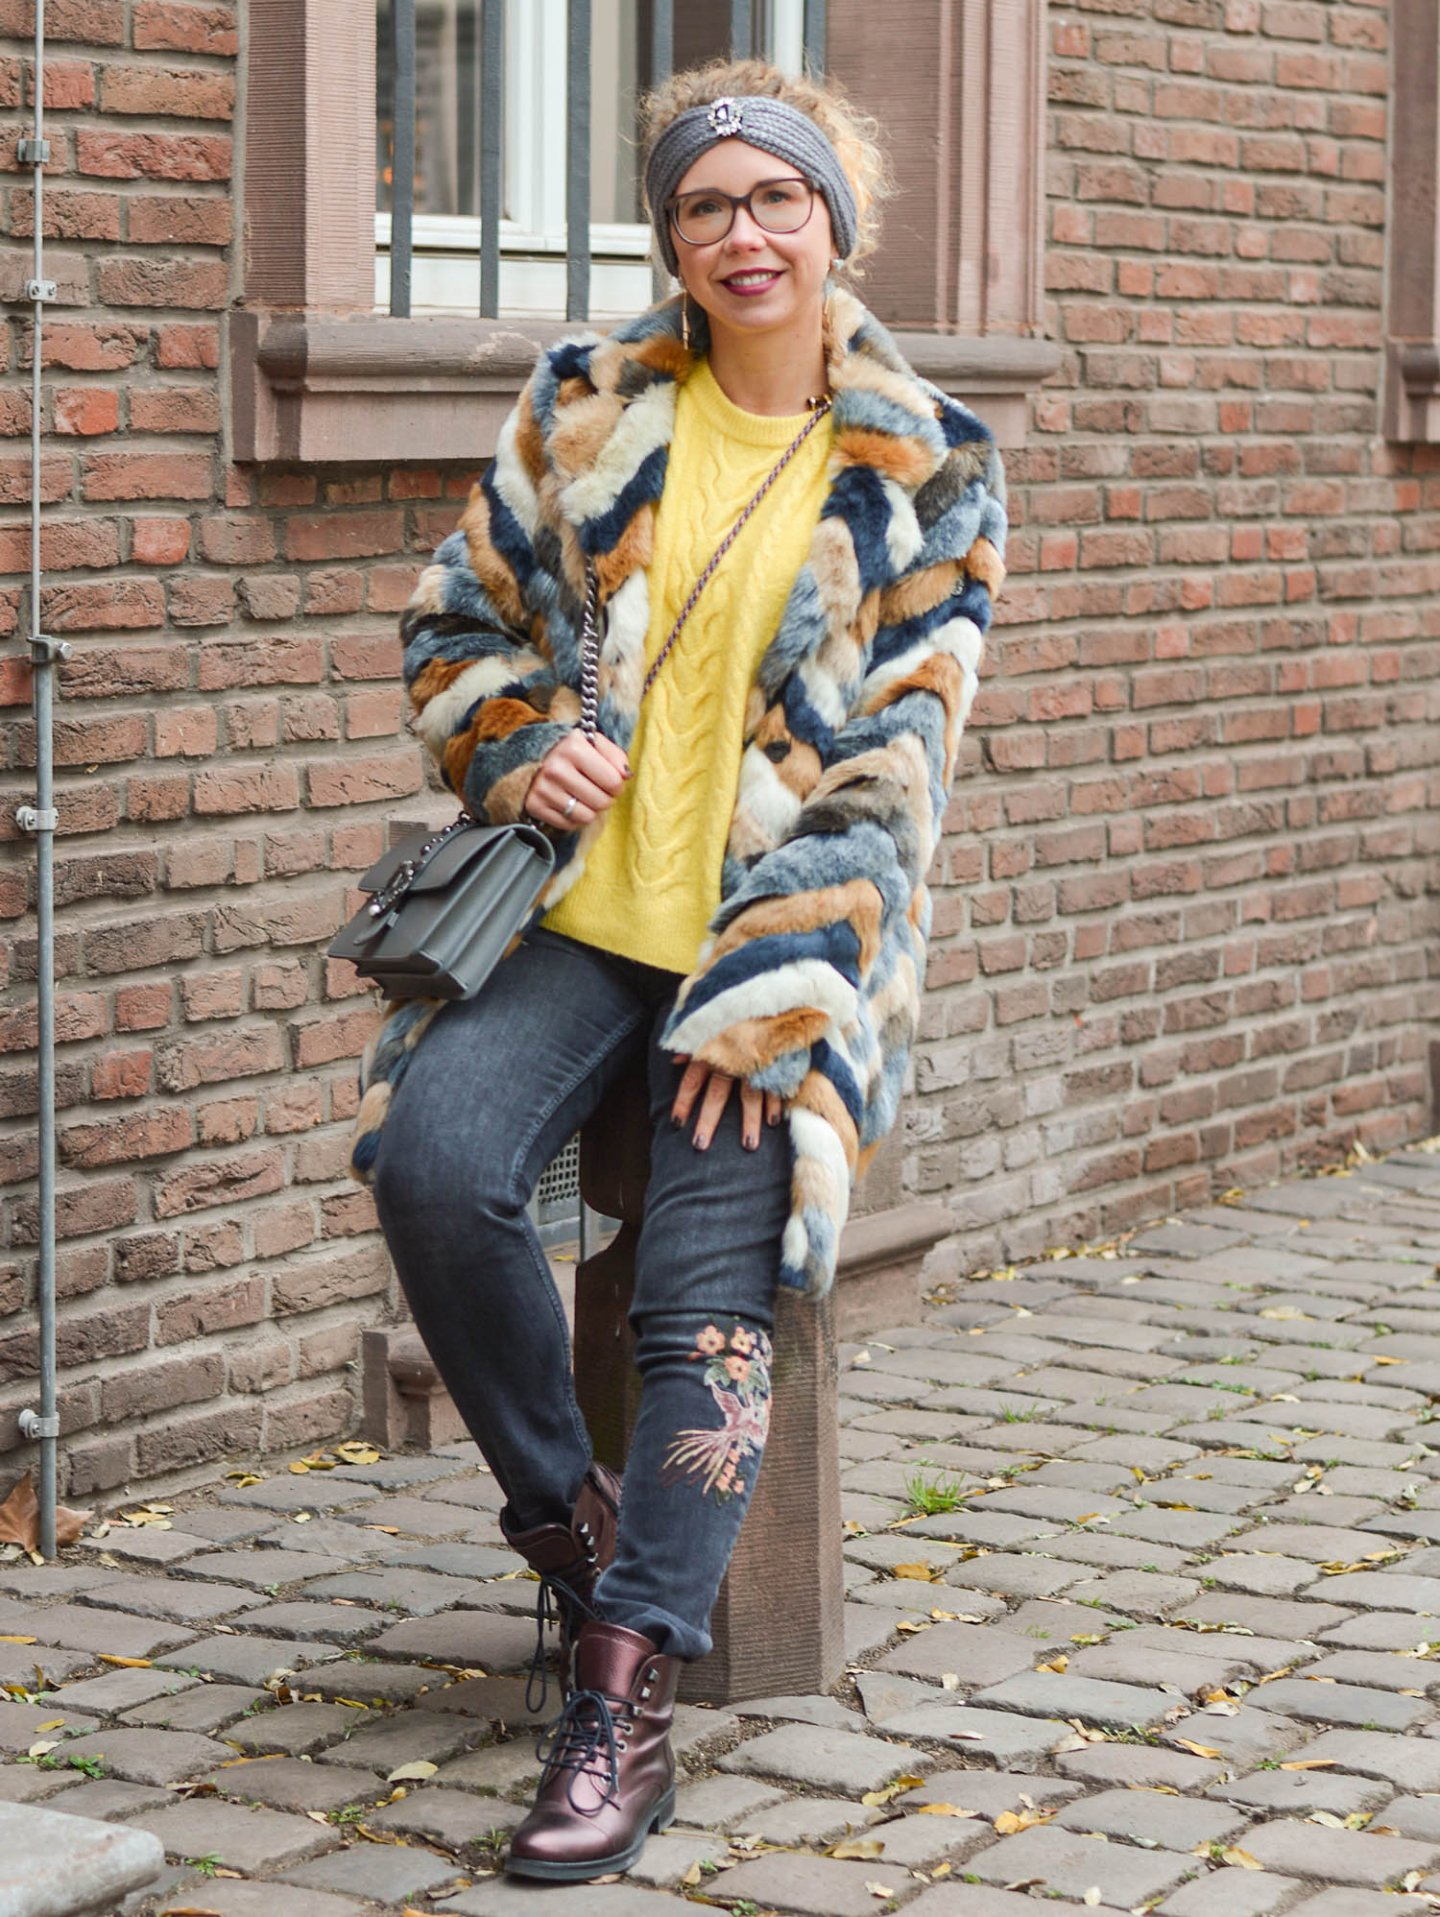 Kuscheloutfit-Stirnband-Kunstfellmantel-Zopfpullover-Kationette-Fashionblogger-Outfit-Winter-2019